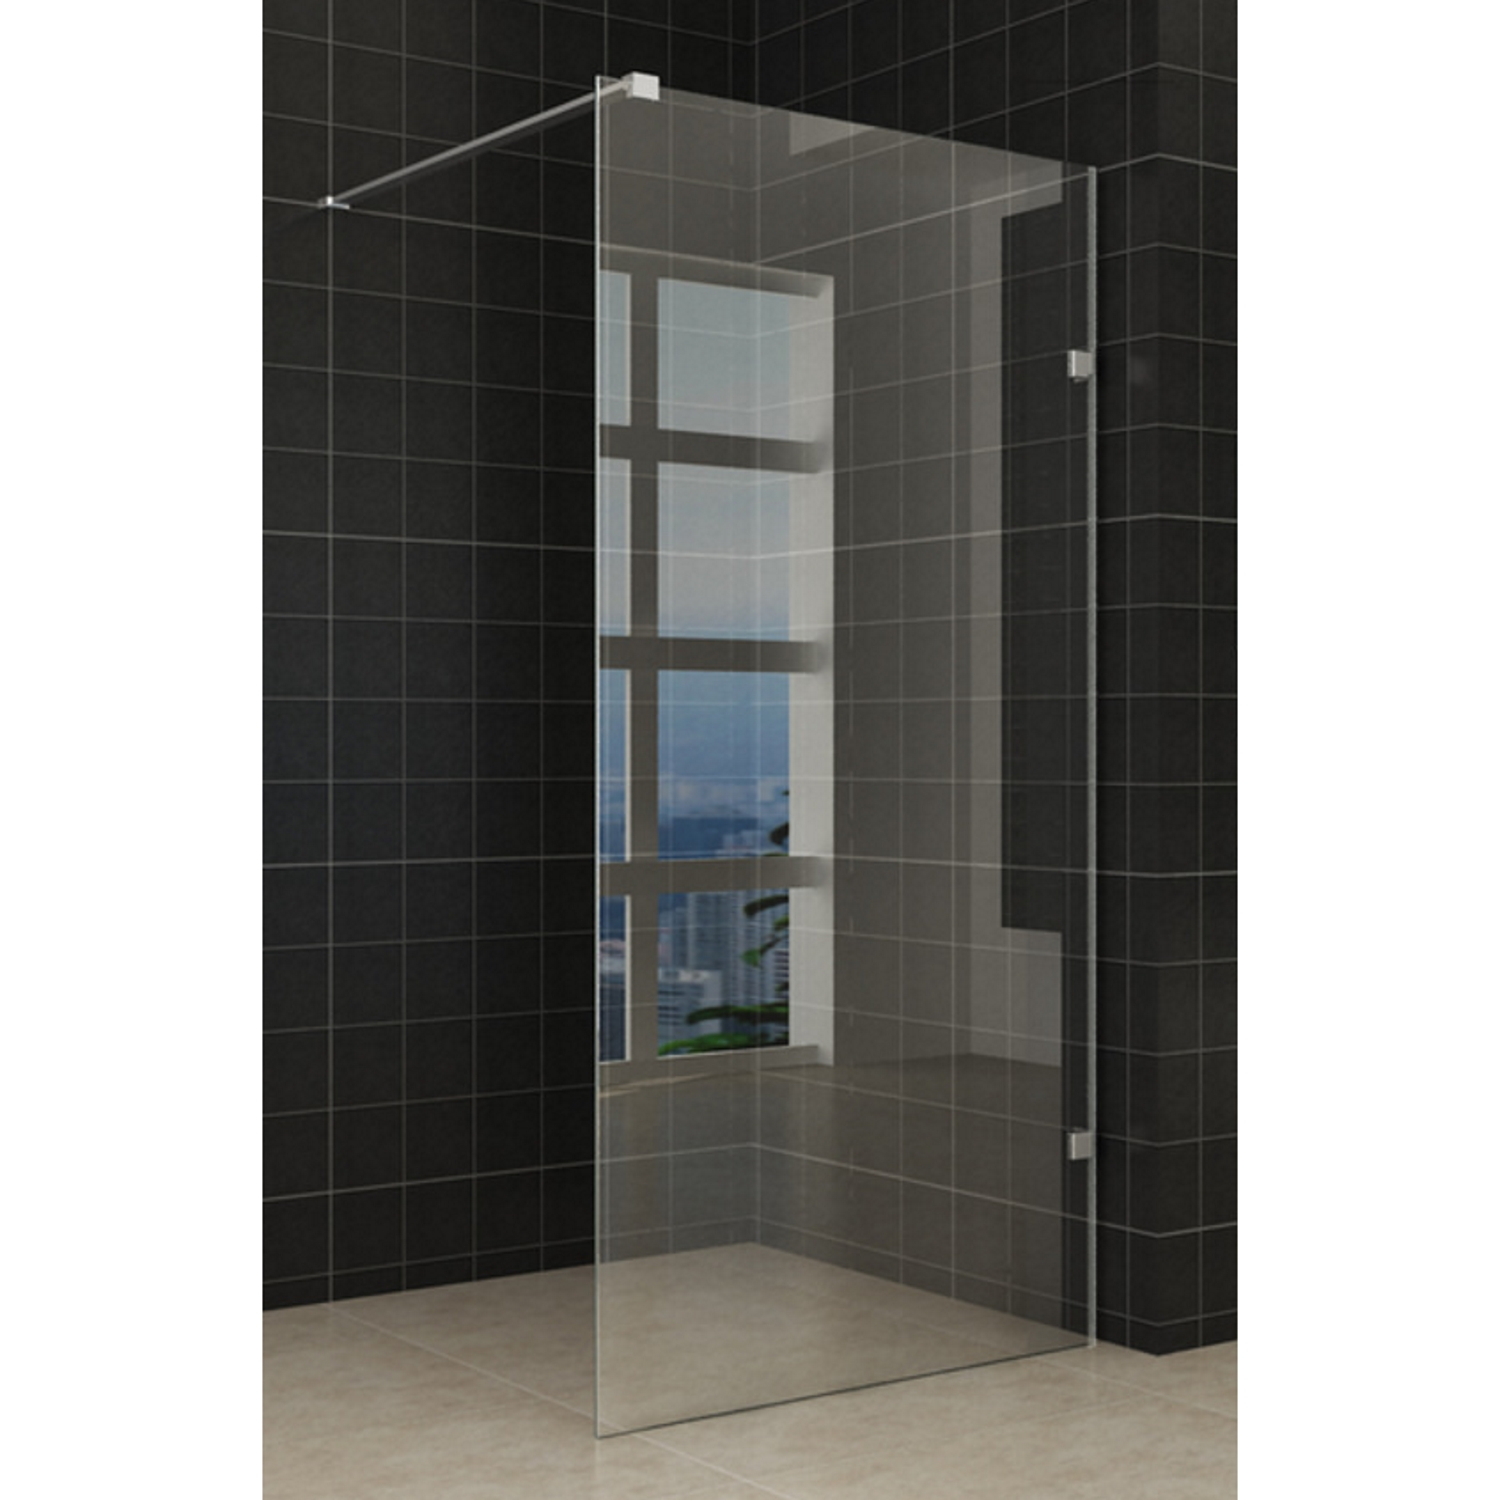 Douche 67541 BWS Edge Douchewand Profielloos 120×200 cm 8 mm NANO coating